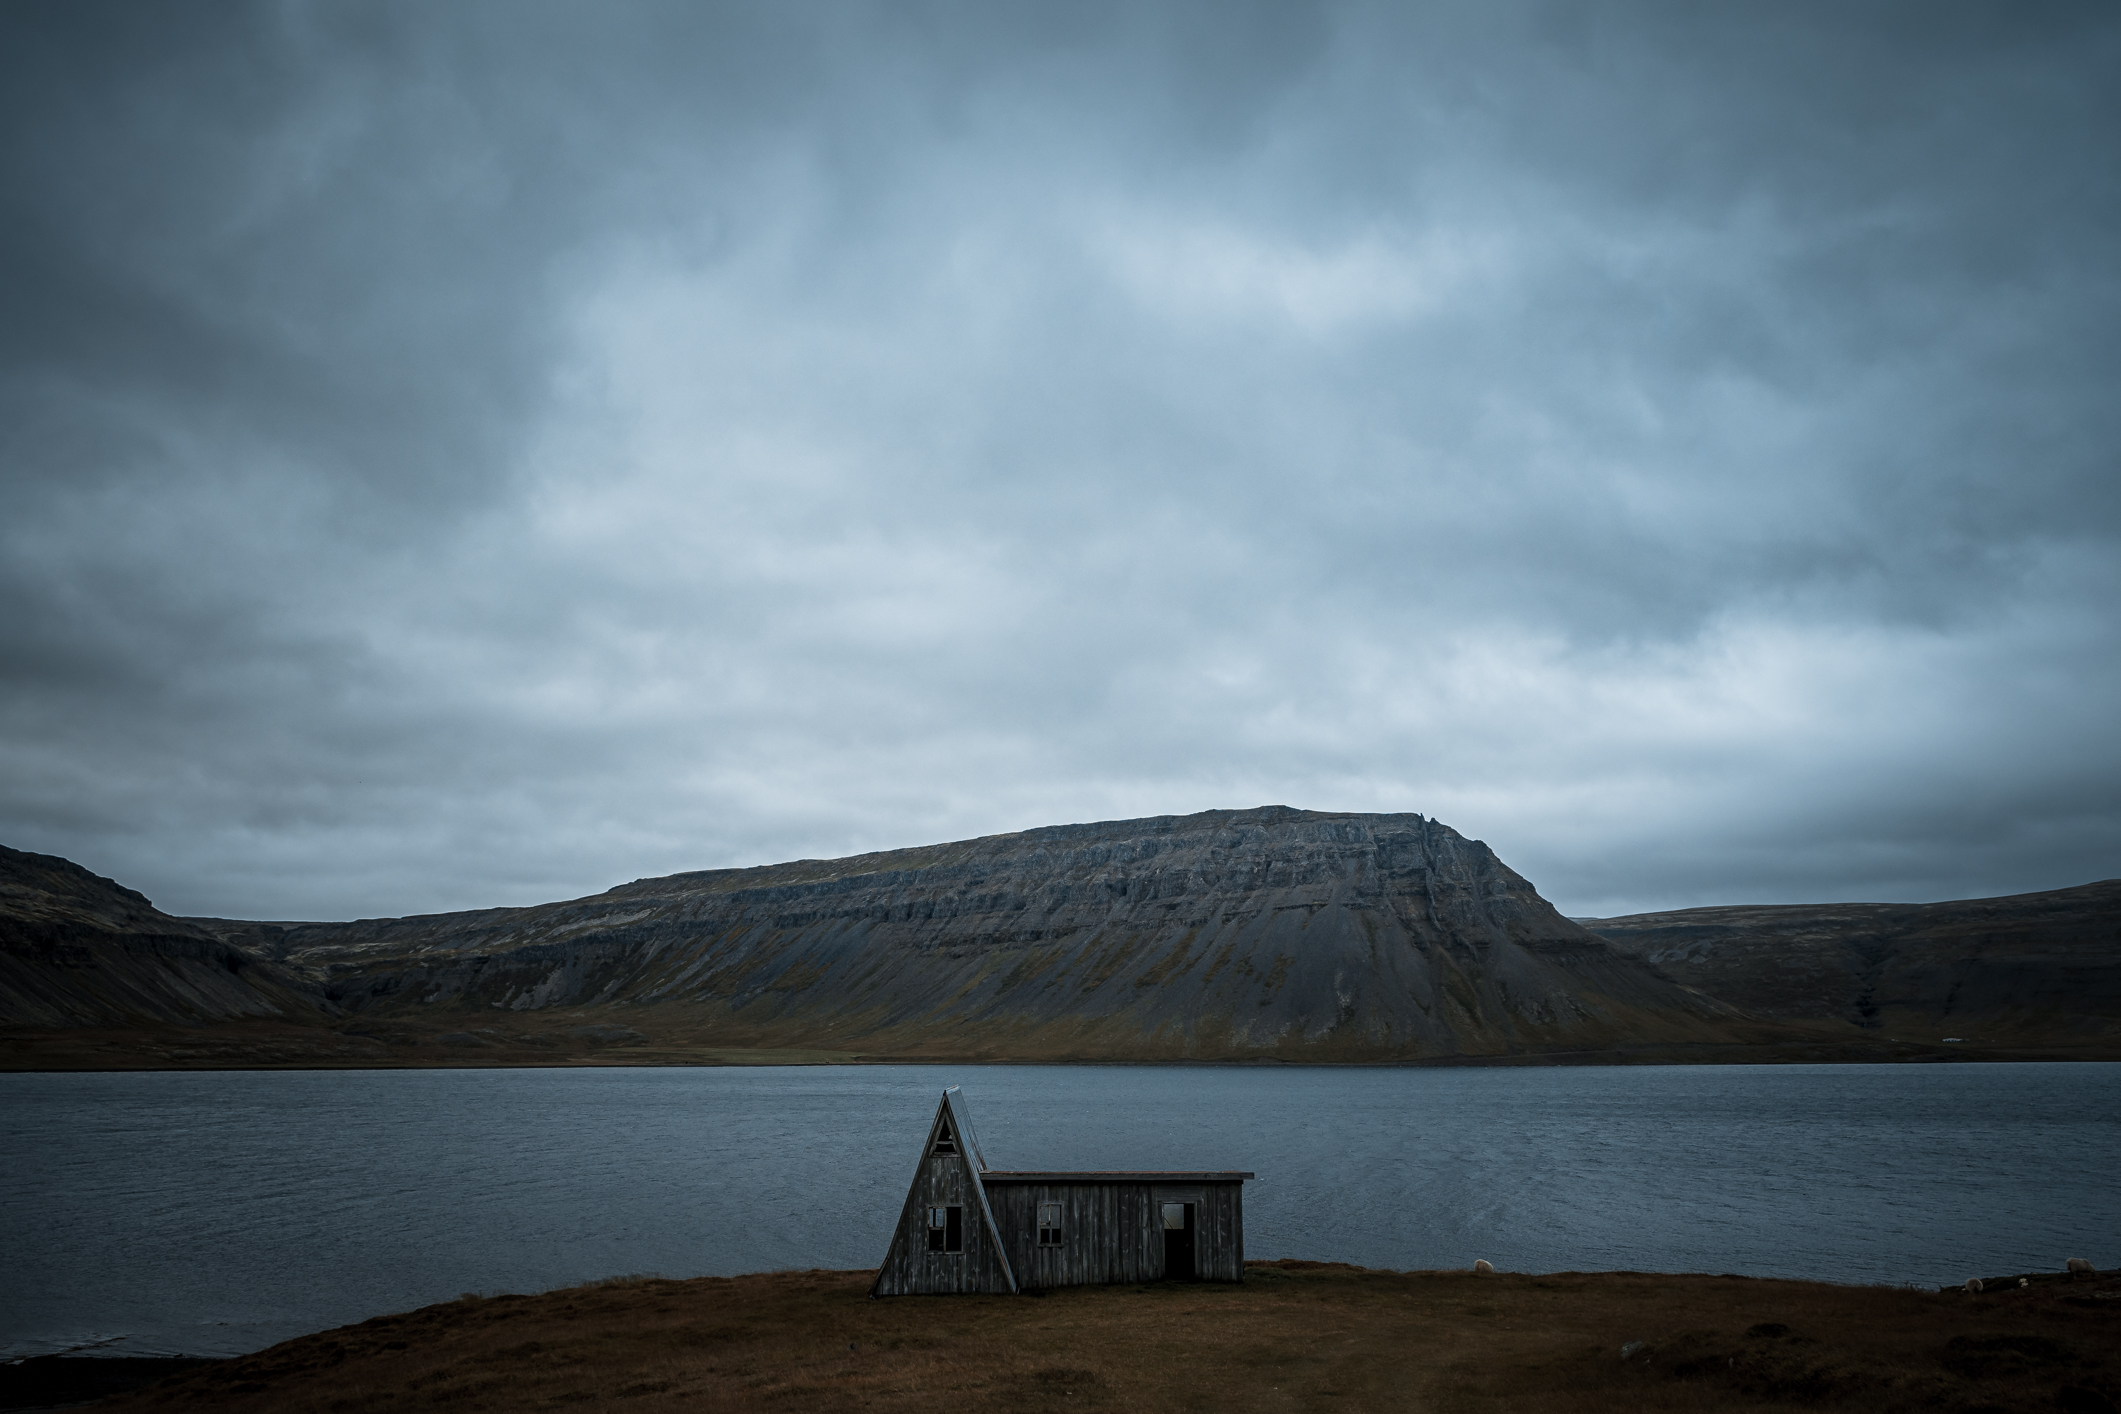 Fossfjörður in all its beauty. Honestly one of the nicest places in the Westfjords if you ask me.